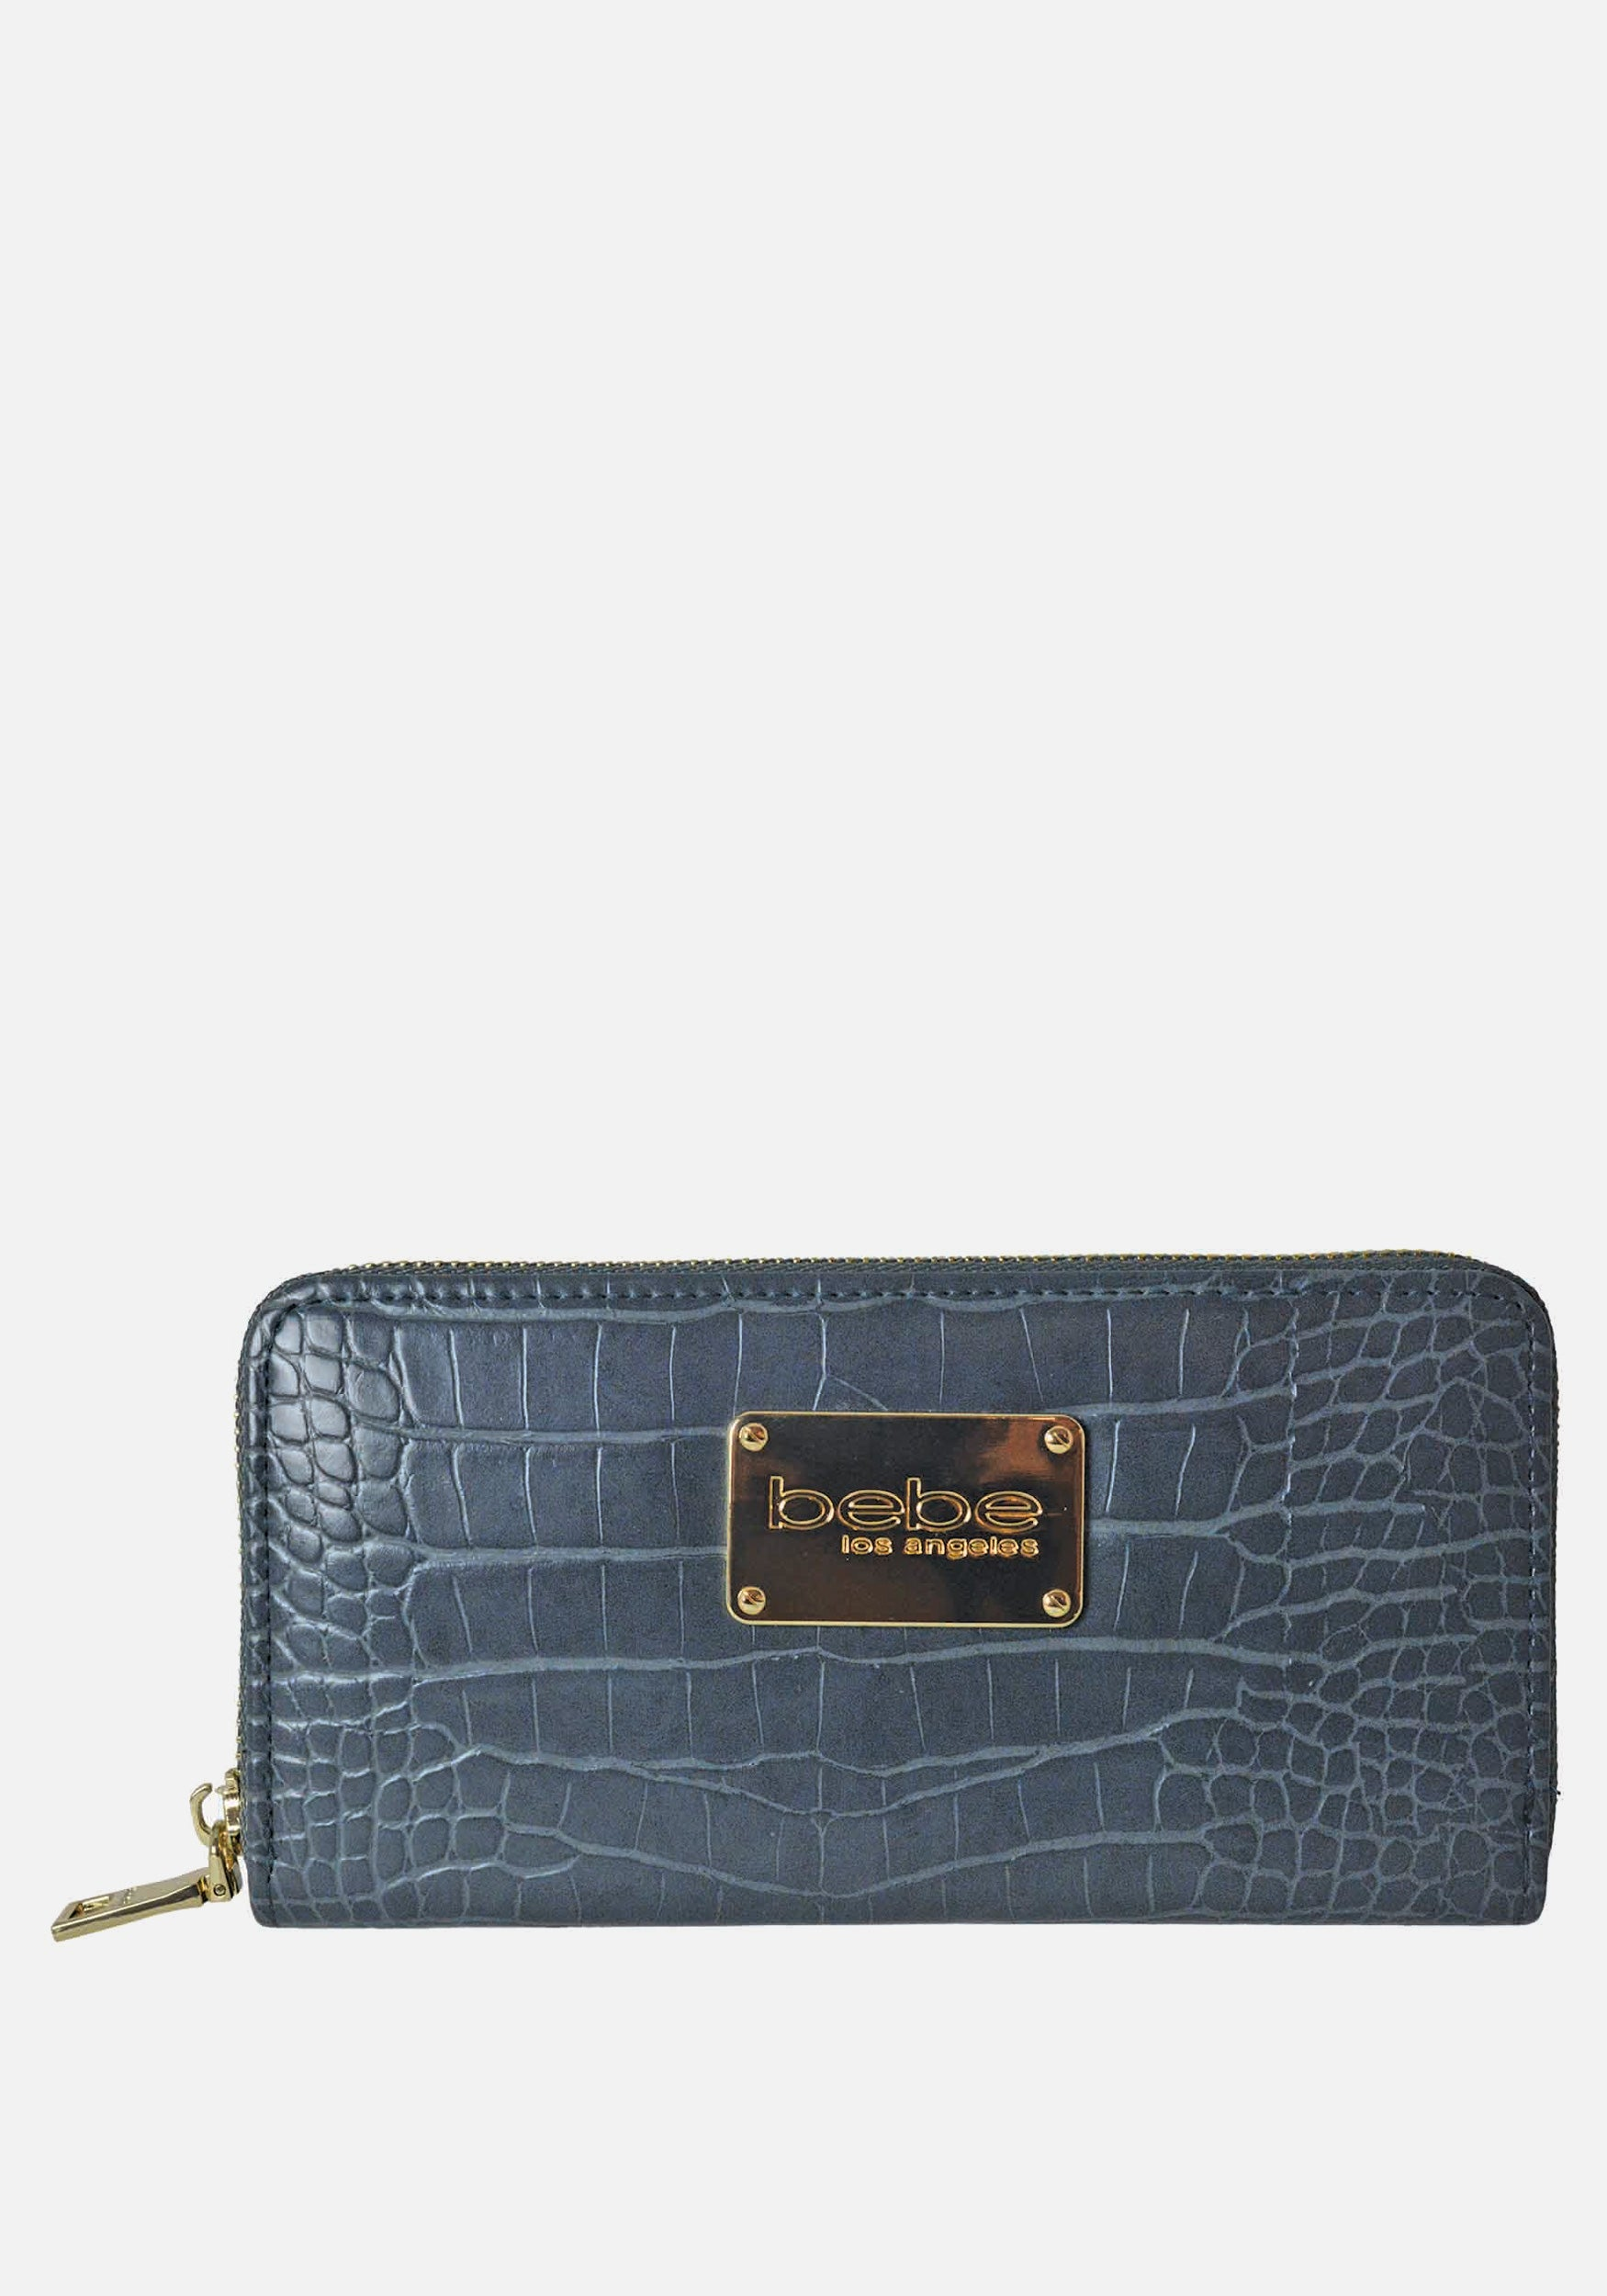 Bebe Women's Natalia Croco Wallet in Grey Polyester